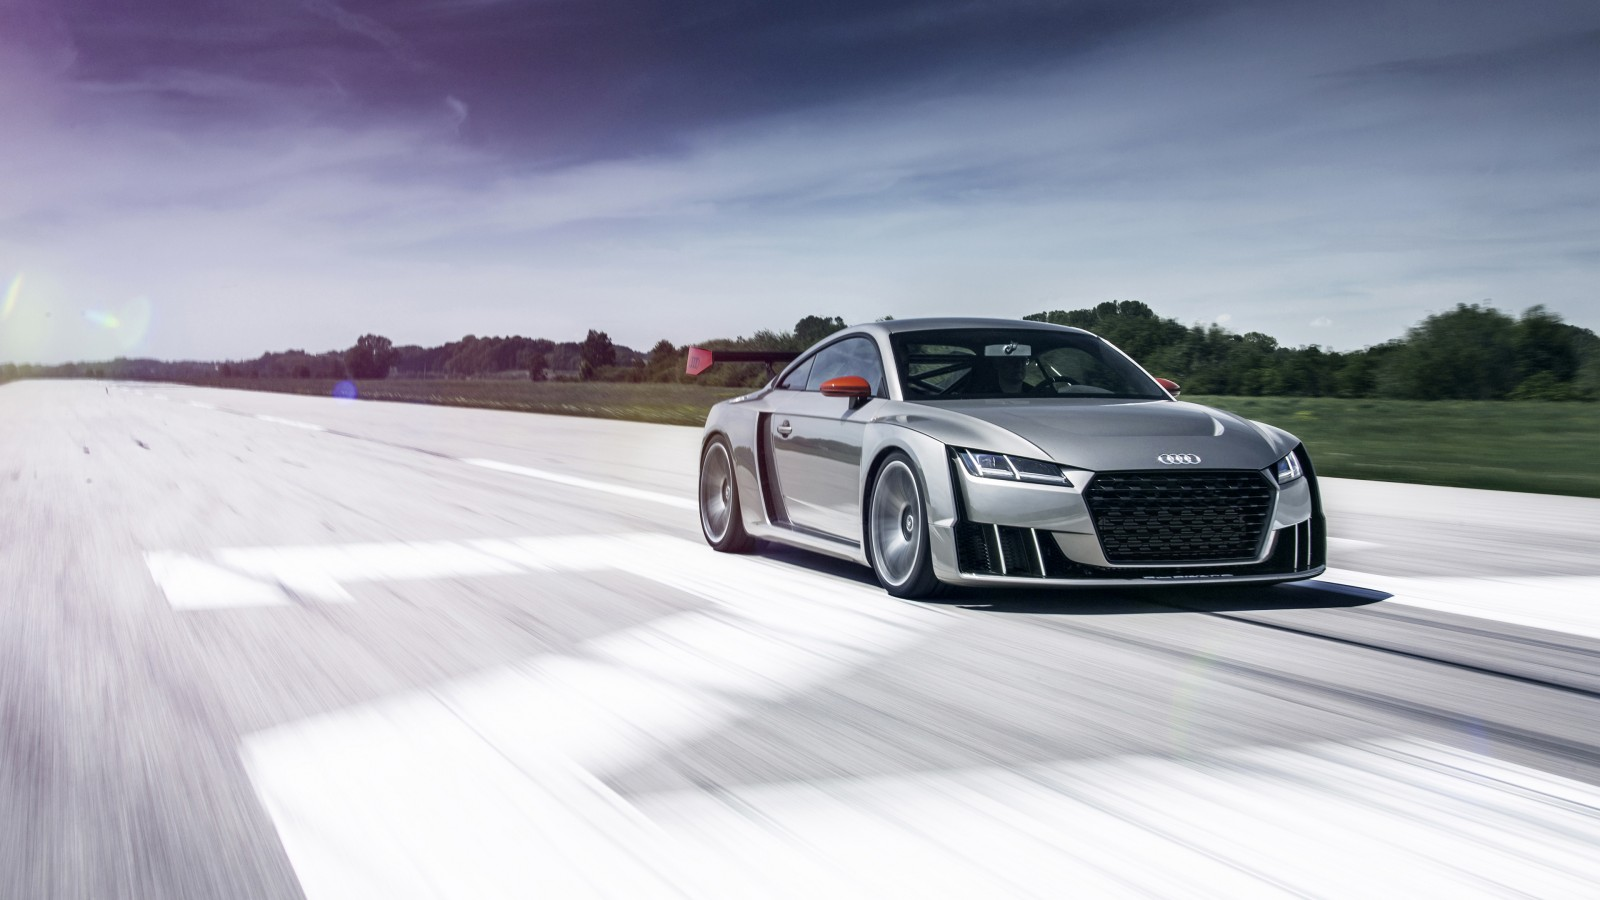 Audi Tt Clubsport Turbo 2015 Wallpaper Hd Car Wallpapers